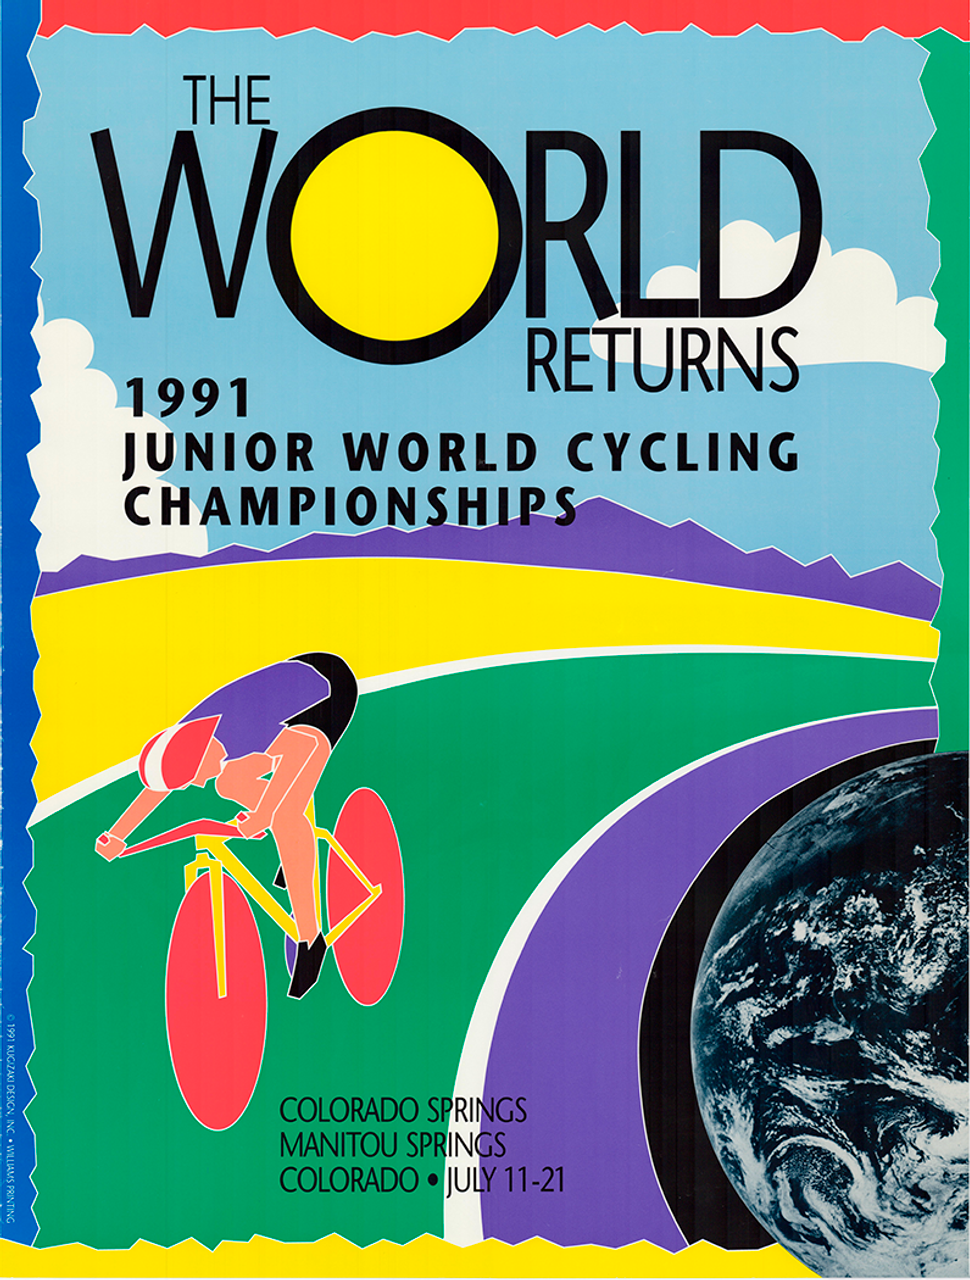 1991 World Junior Cycling  Championships, Colorado Springs Original Vintage Bicycle Poster